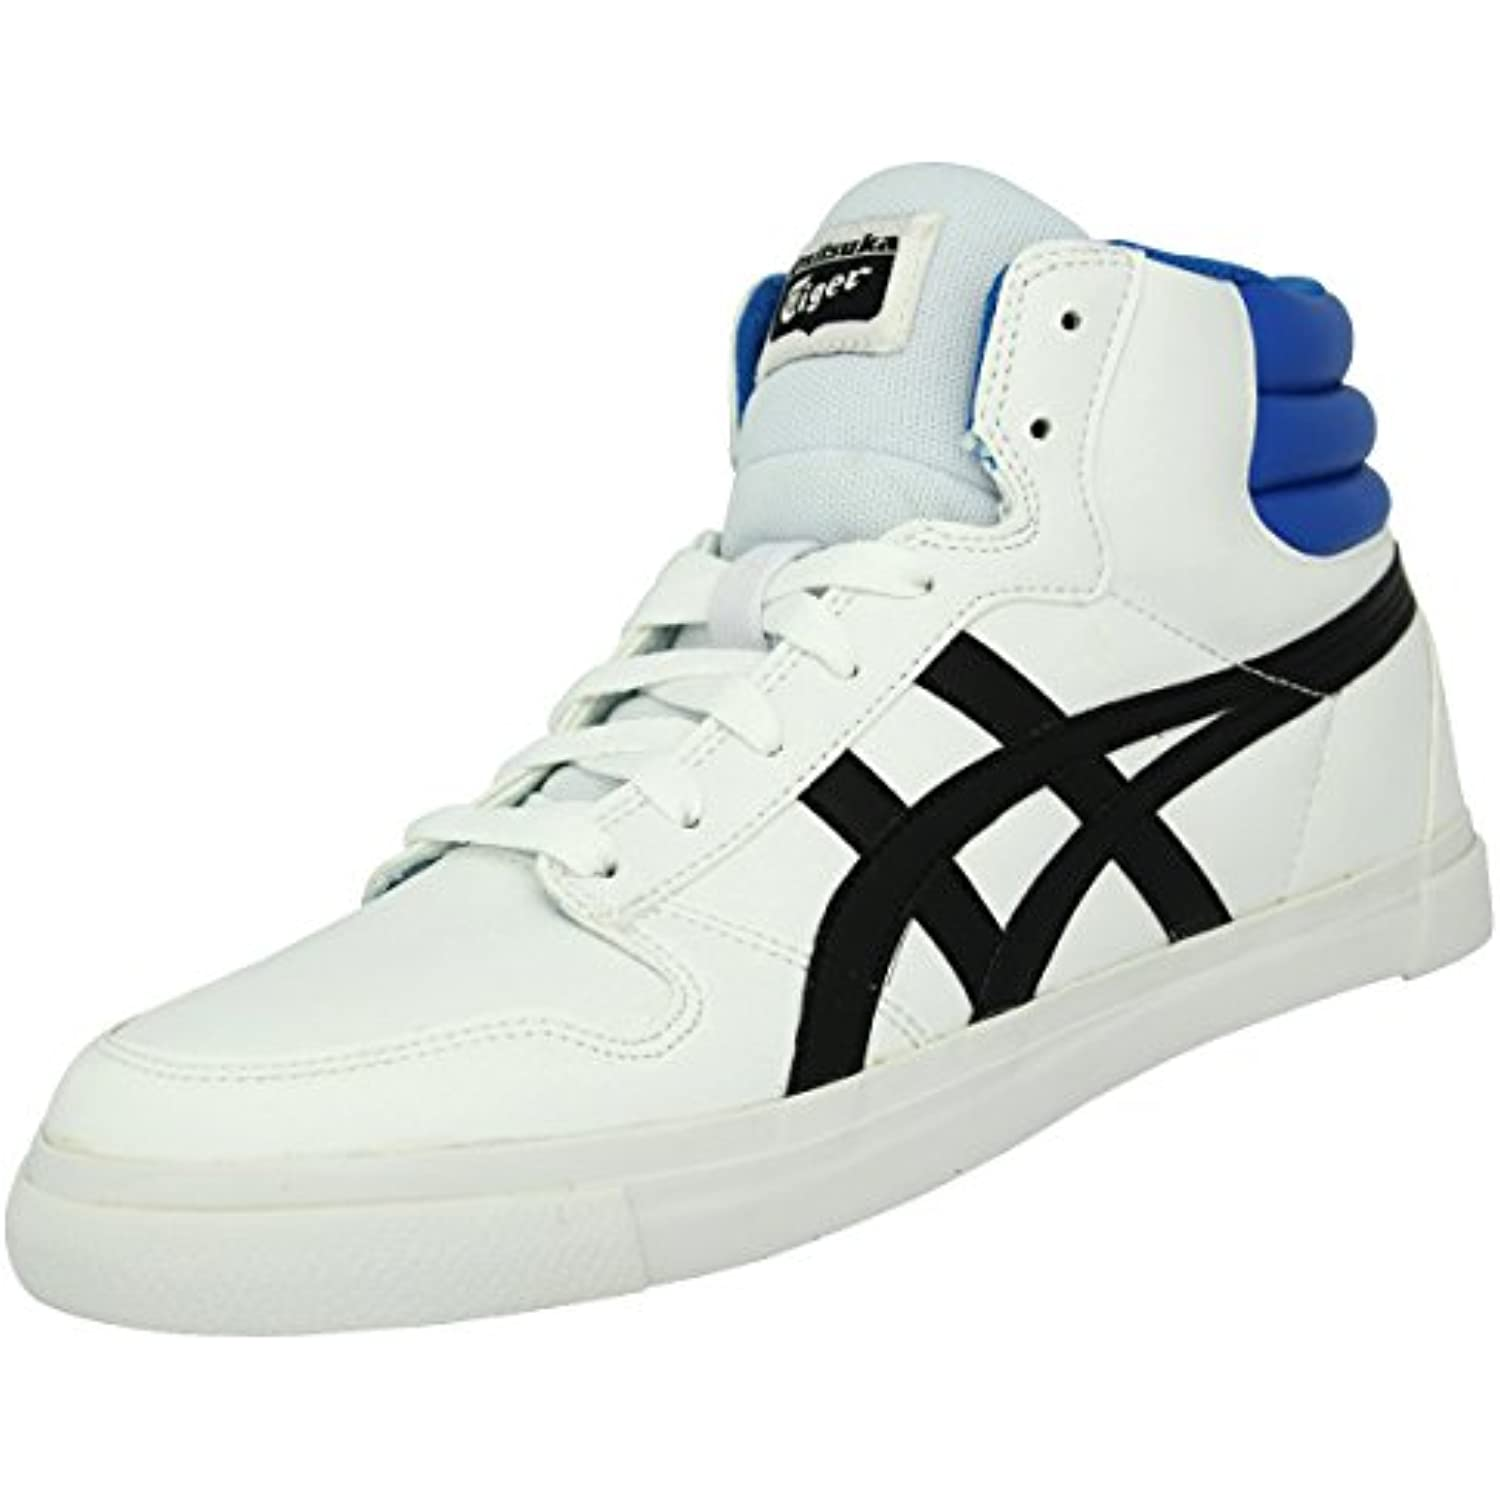 ASICS Onitsuka Tiger A SIST MT Chaussures Mode Sneakers Sneakers Sneakers Homme Noir Bleu Blanc - B00DW2MM3Q - 922568